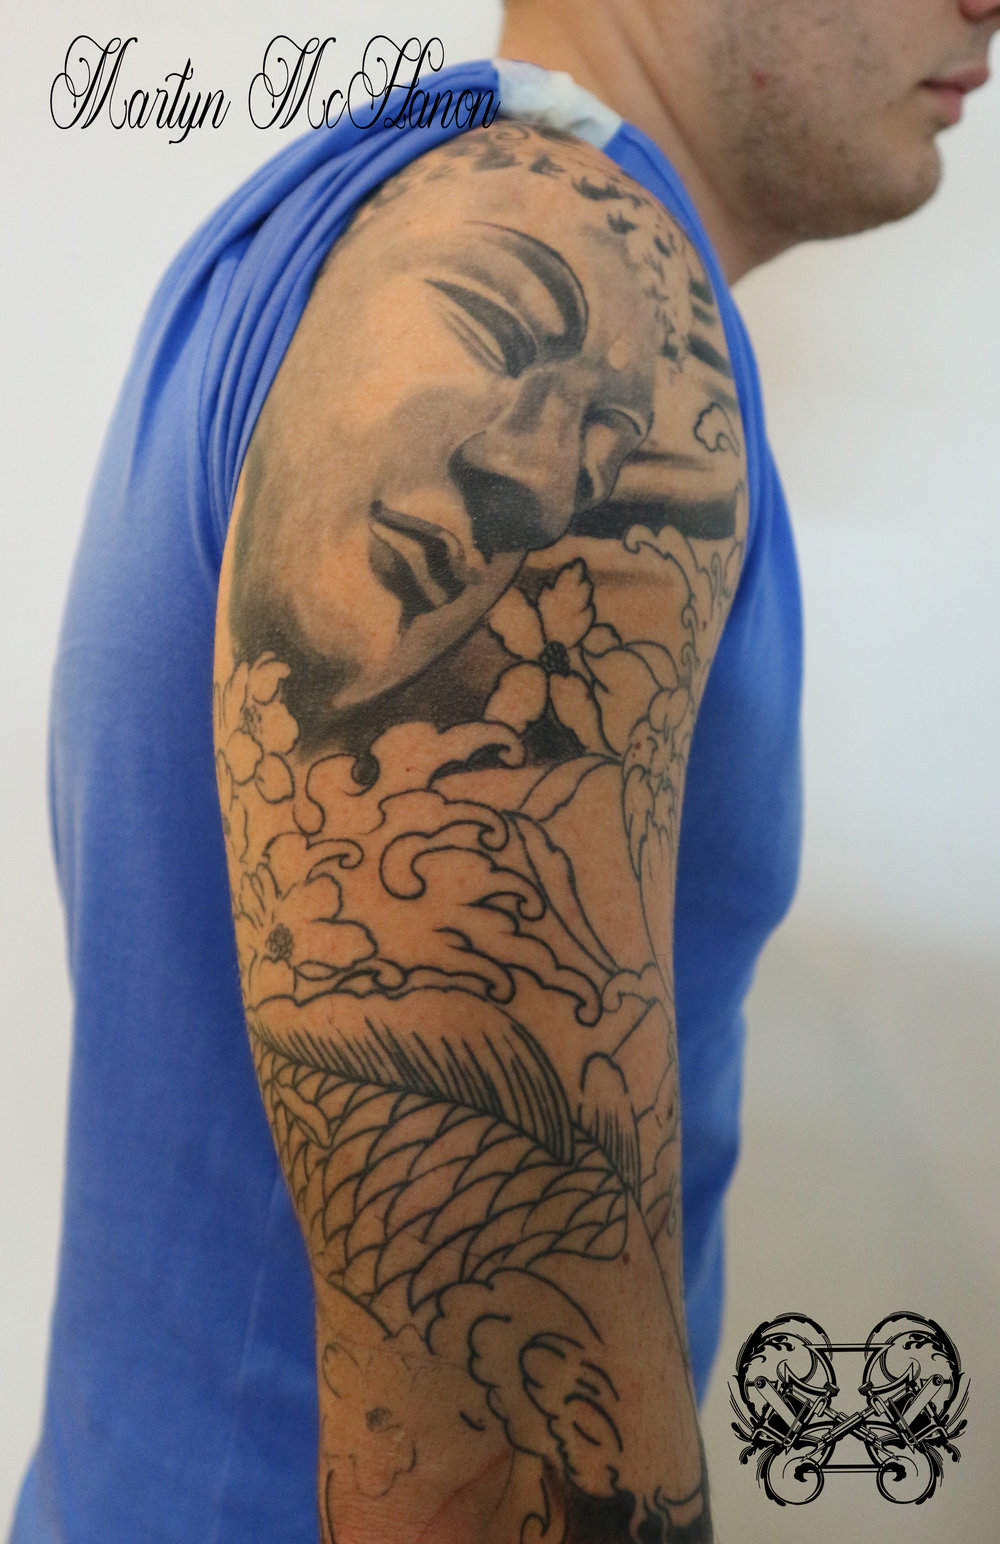 Martyn buddha and koi sleeve WIP upper arm.jpg